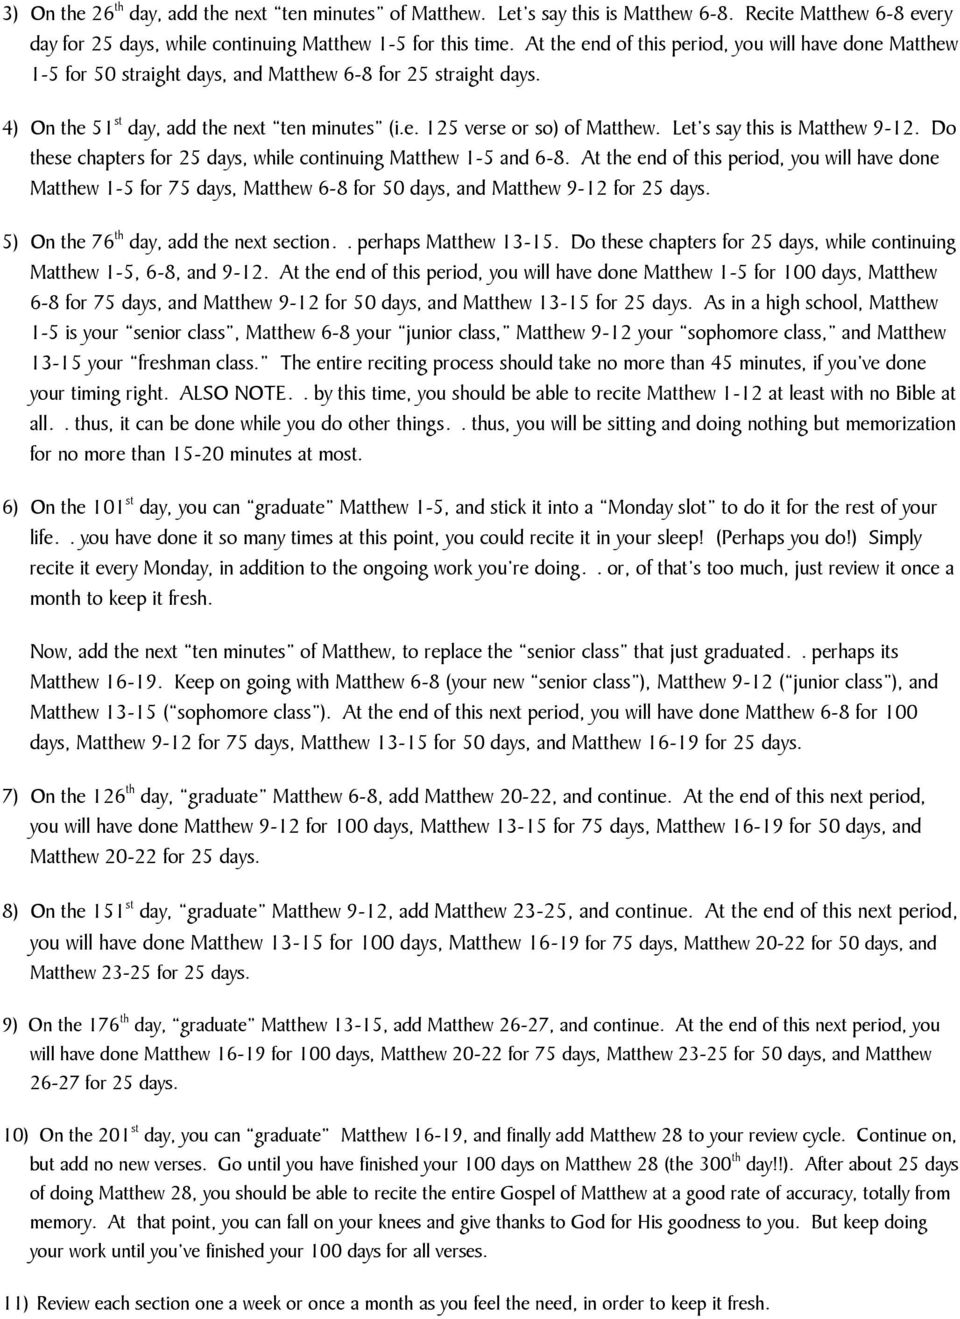 Let s say this is Matthew 9-12. Do these chapters for 25 days, while continuing Matthew 1-5 and 6-8.